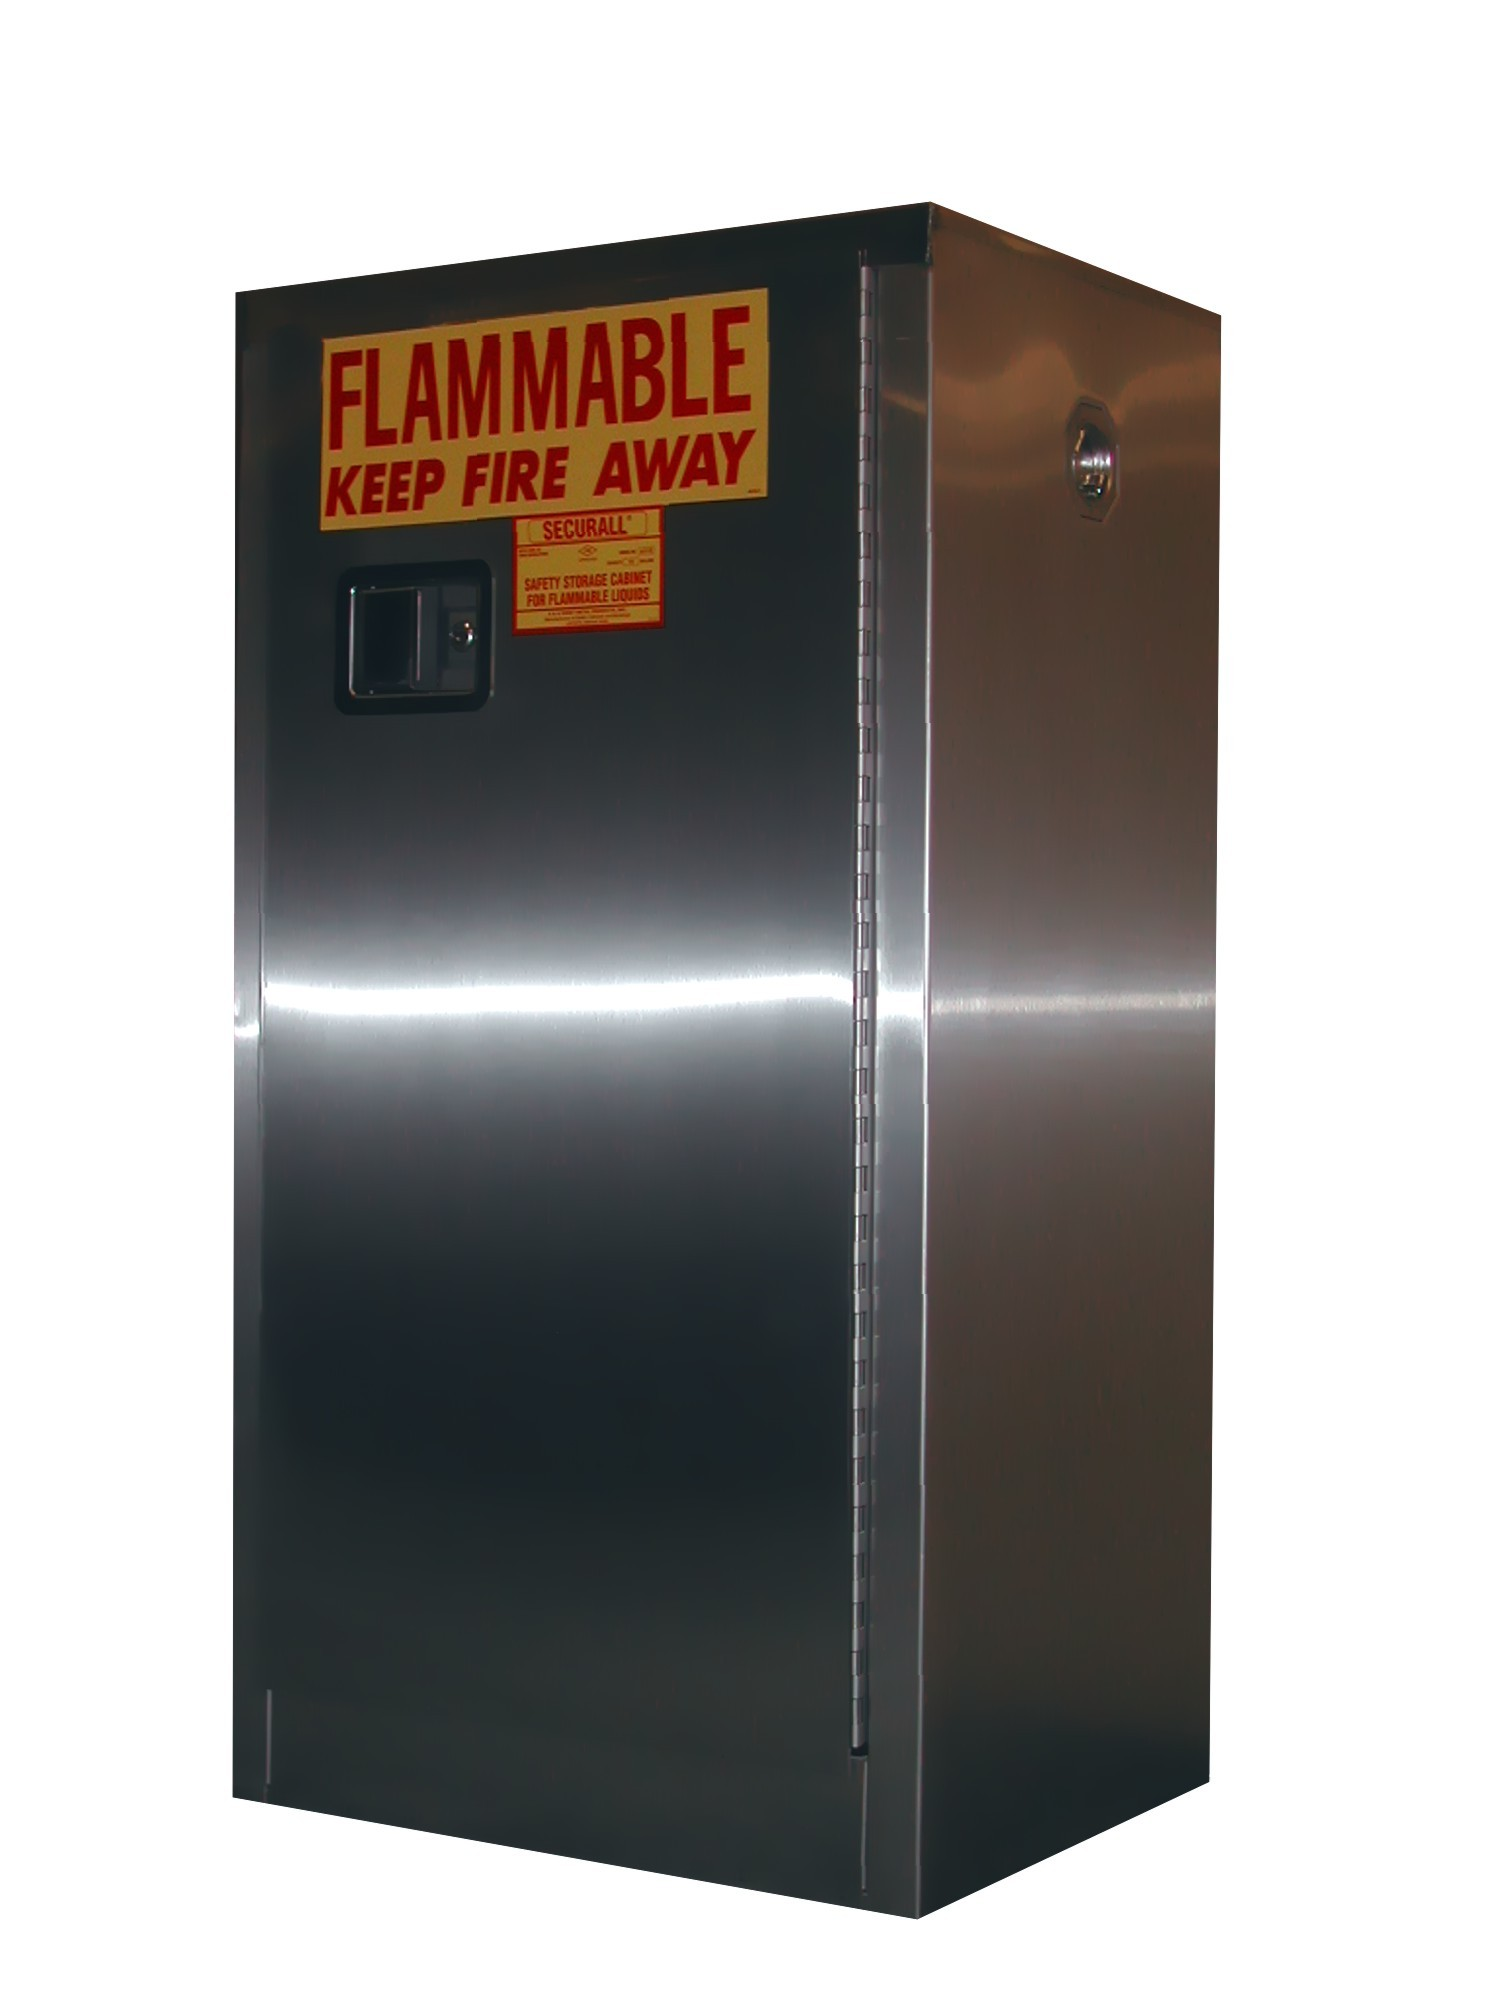 A110-SS - Stainless Steel Flammable Storage Cabinet - 16 Gal. Storage Capacity